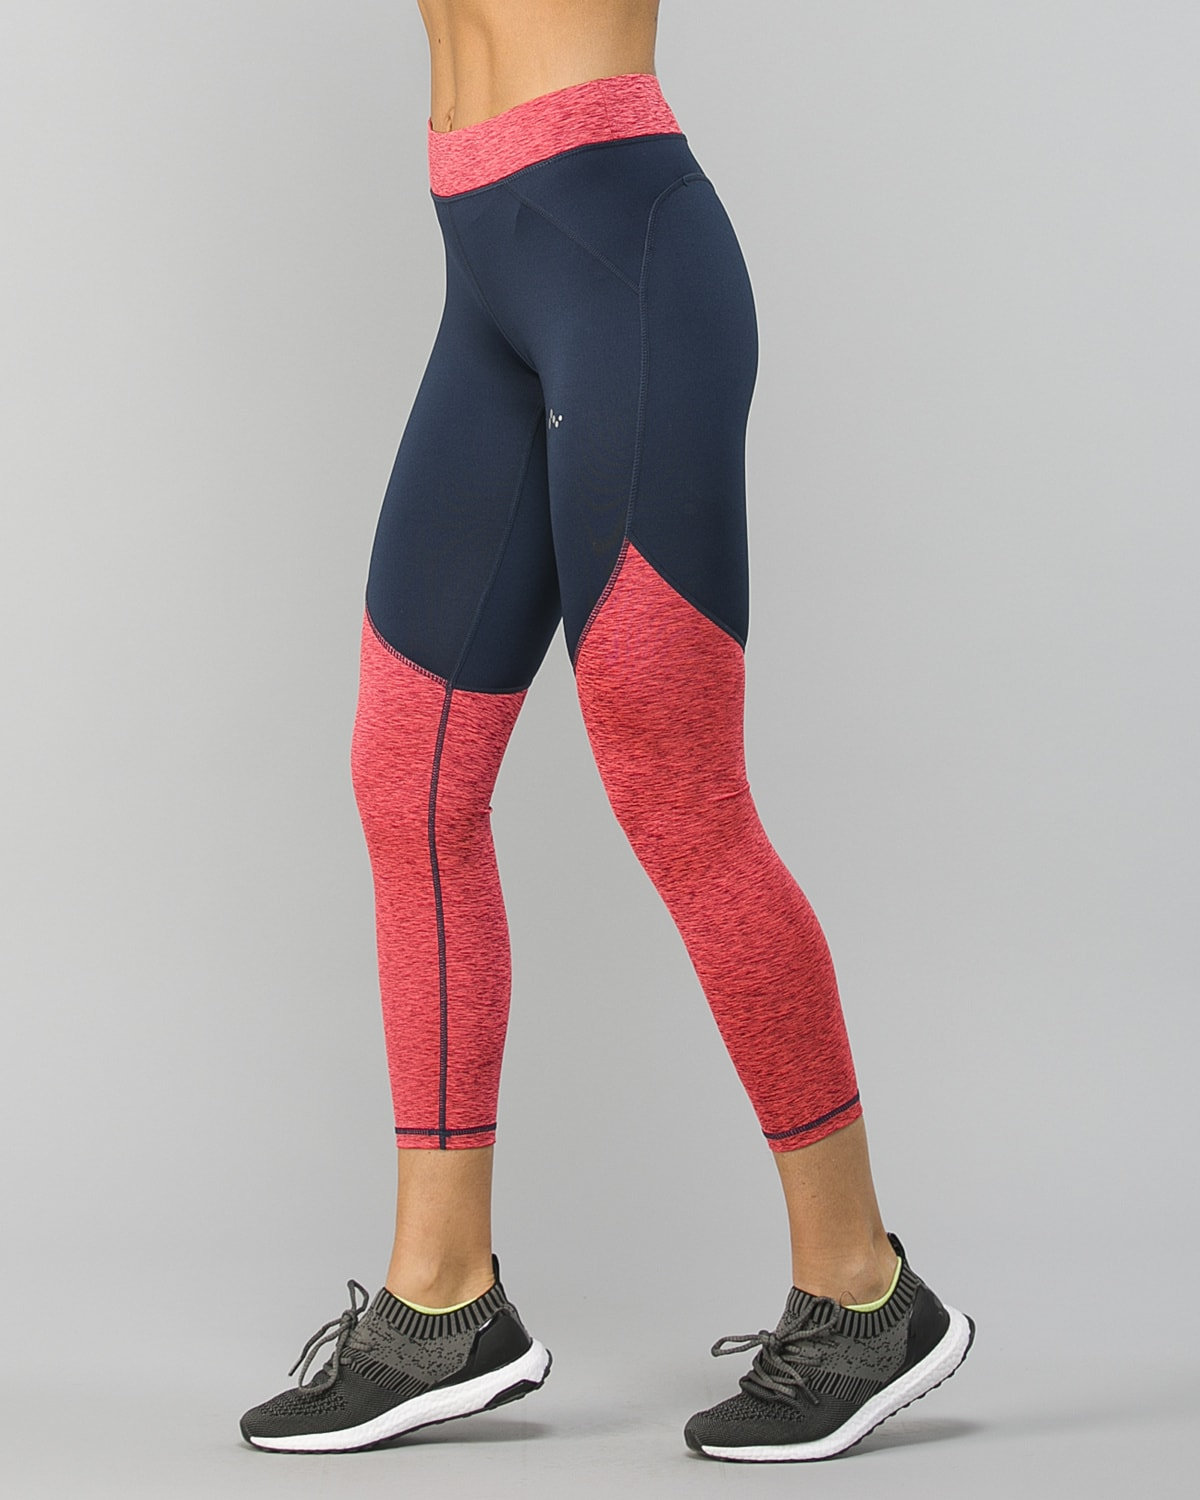 Only-Play-Amalia-7-8-Training-Tights1